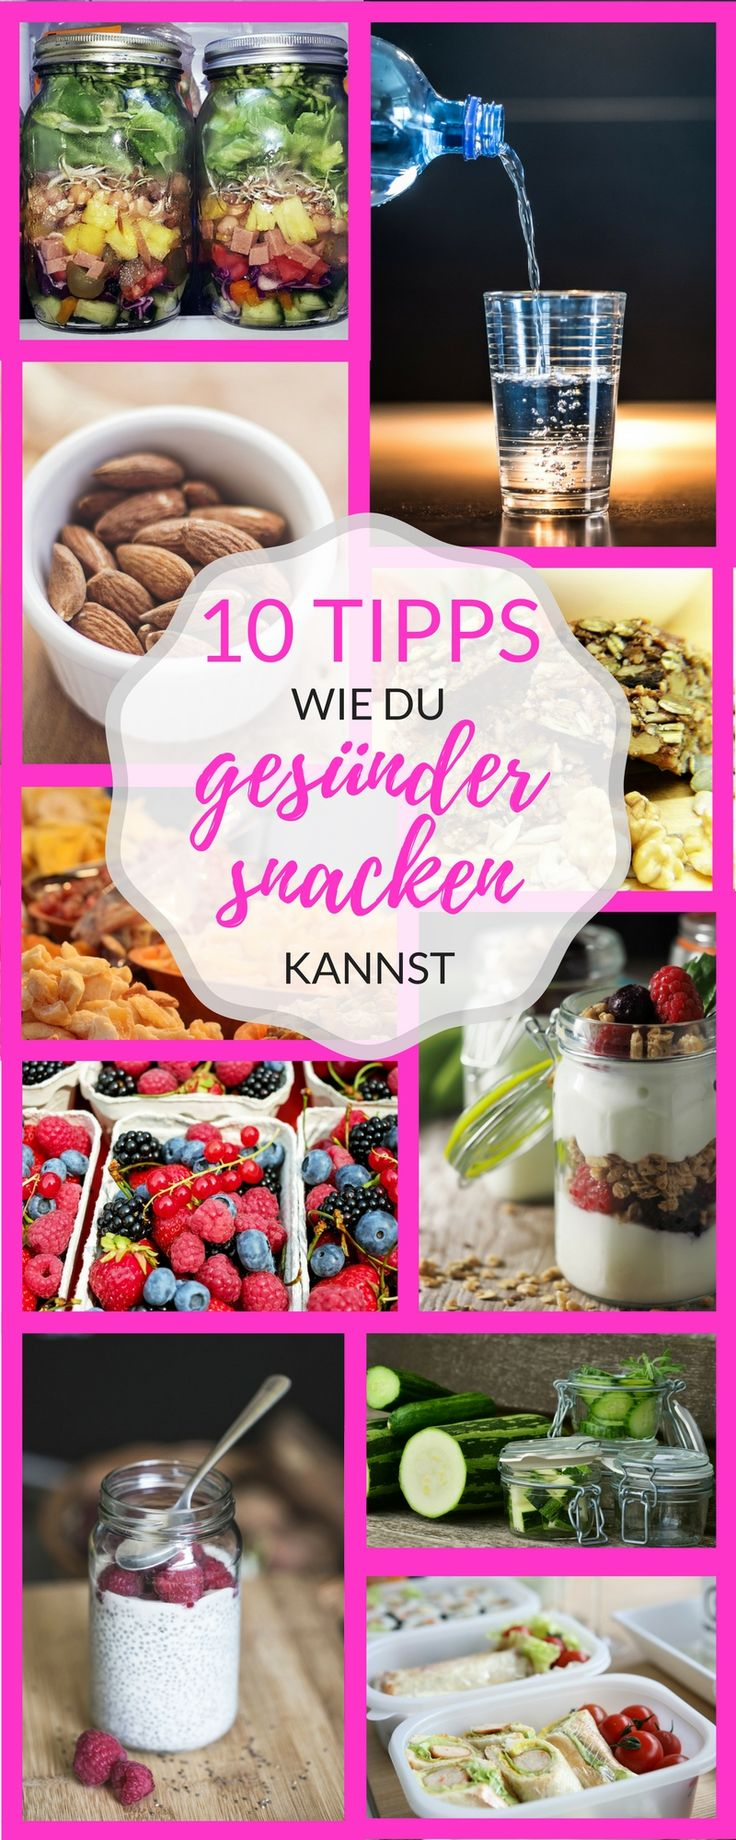 Inspiration und Tool-Tipps für gesunde Büro-Snacks – female-fitness24 Ernährung, Outfits, Blog, Workout, Motivation